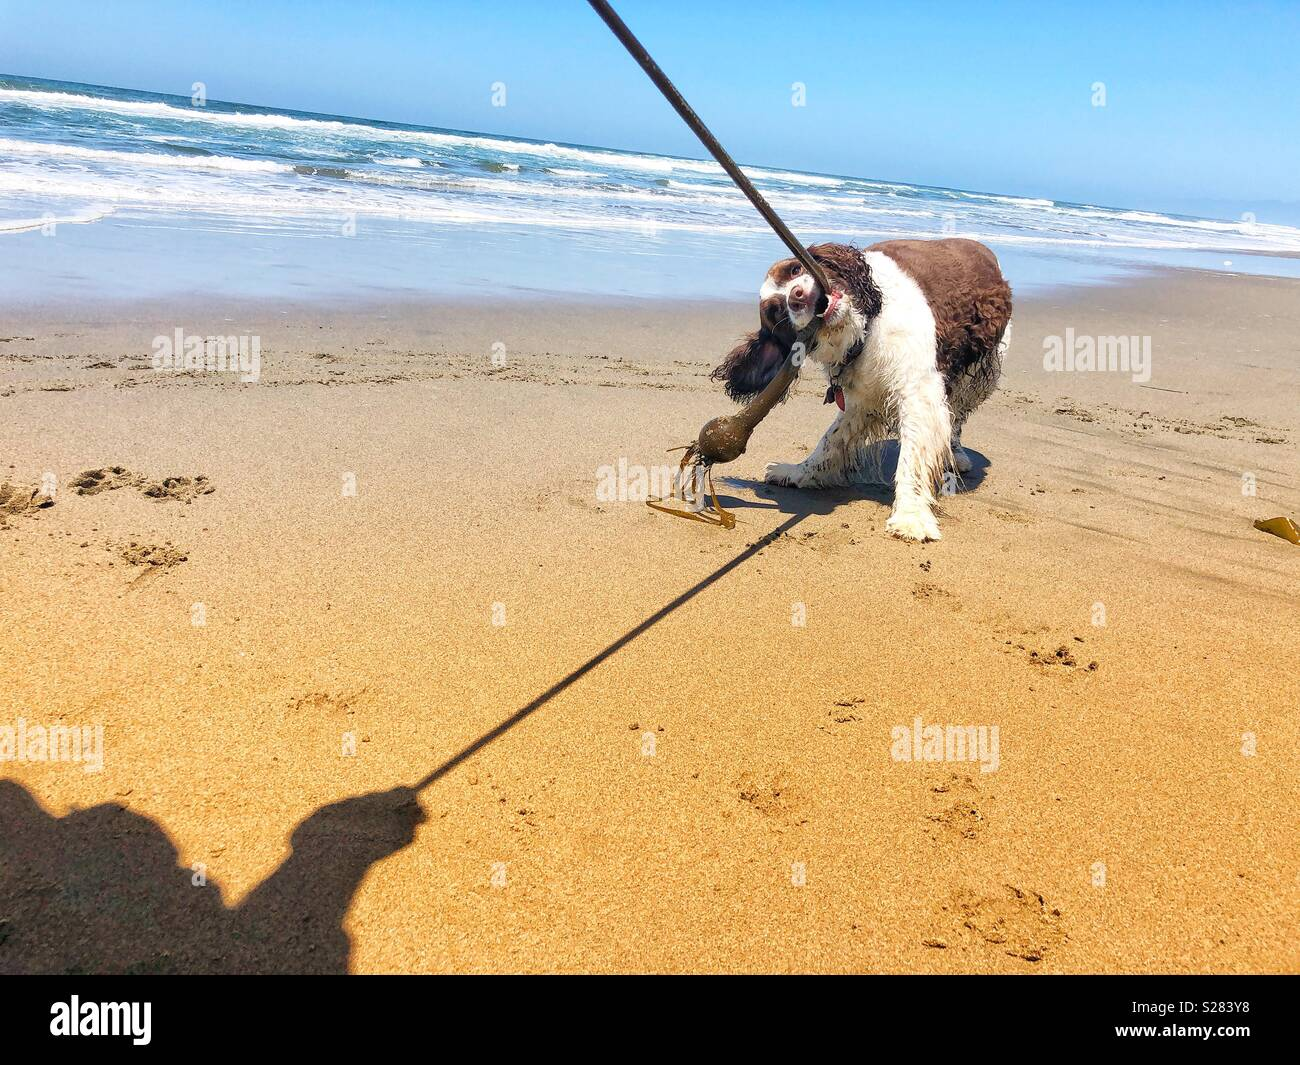 Giddy Stock Photos & Giddy Stock Images - Alamy